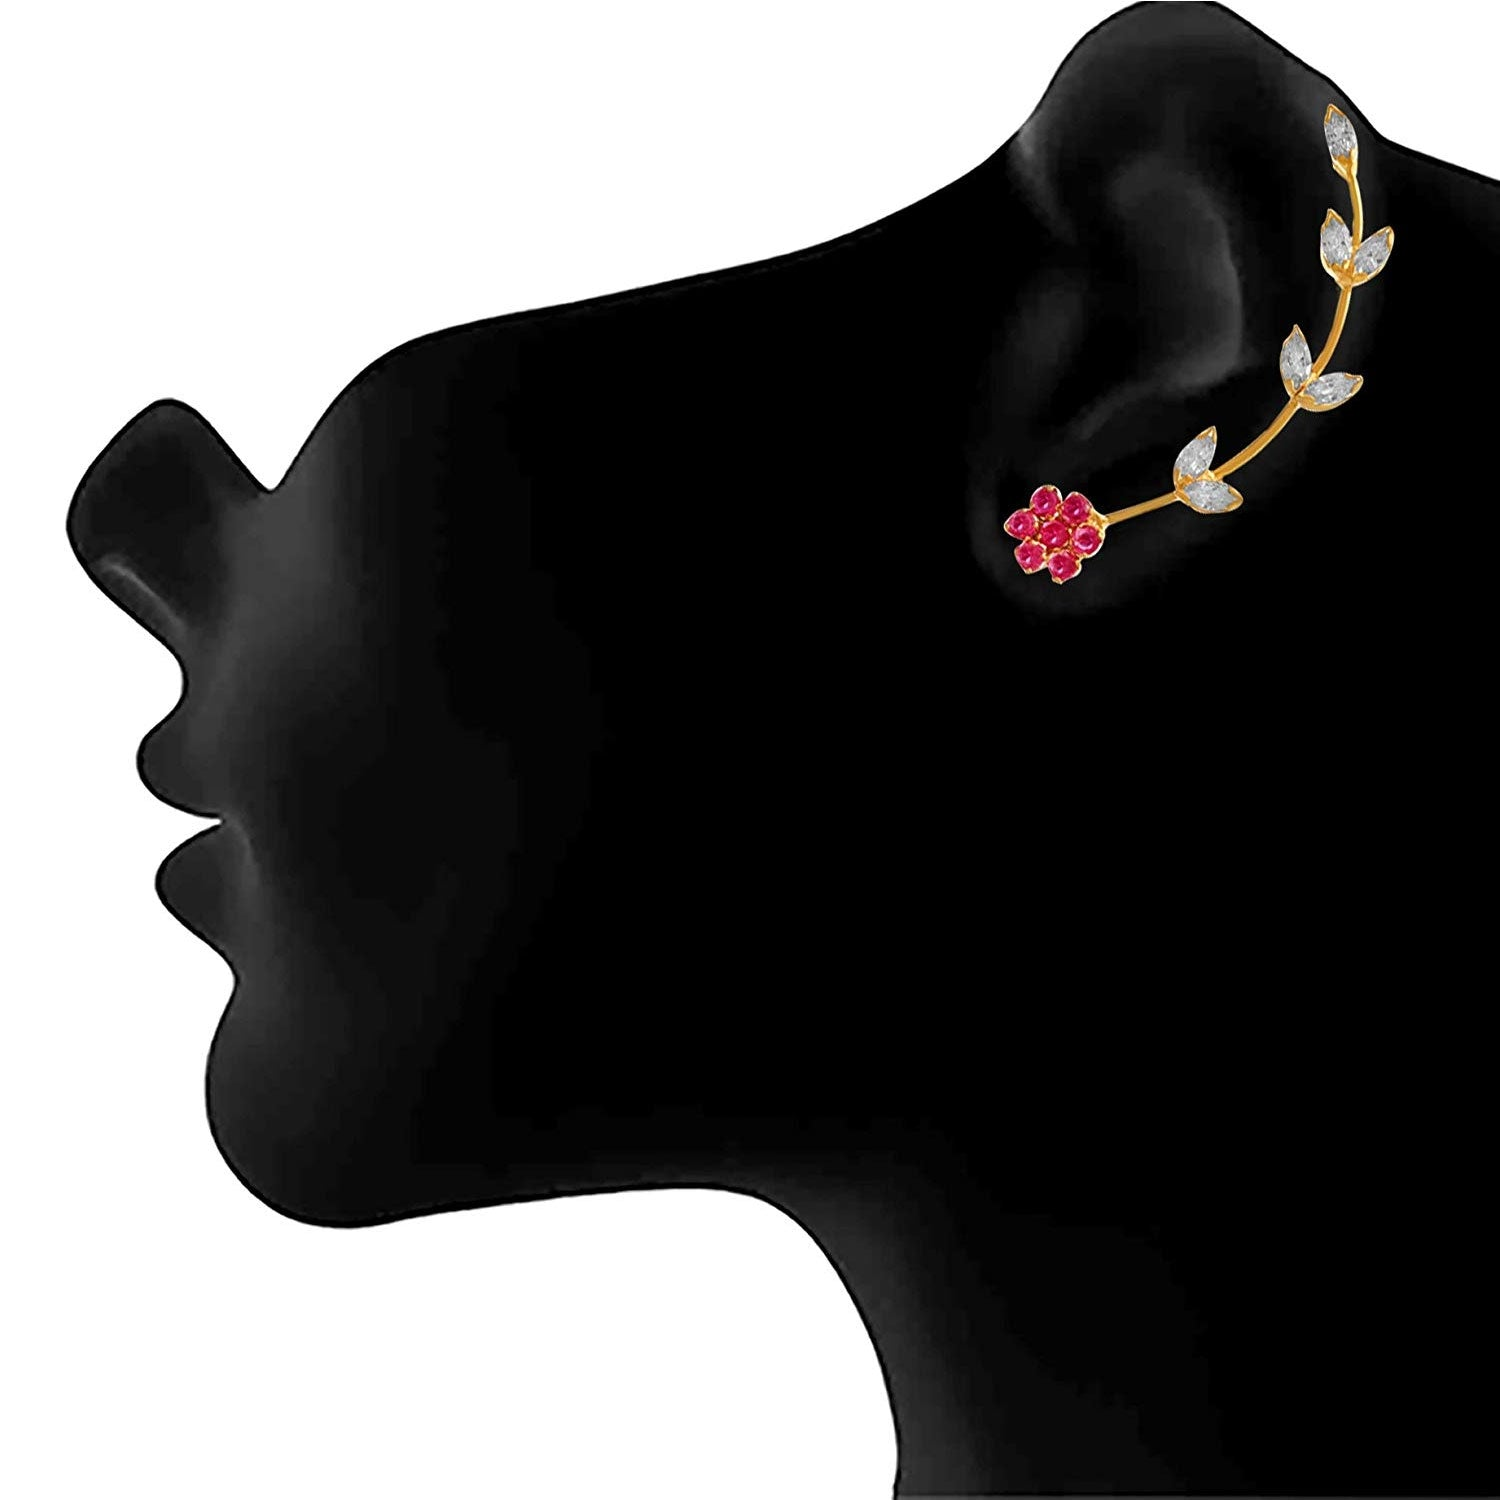 Traditional Ethnic Fusion One Gram Gold Plated Cz American Diamond Earcuff Earrings for Girls & Women